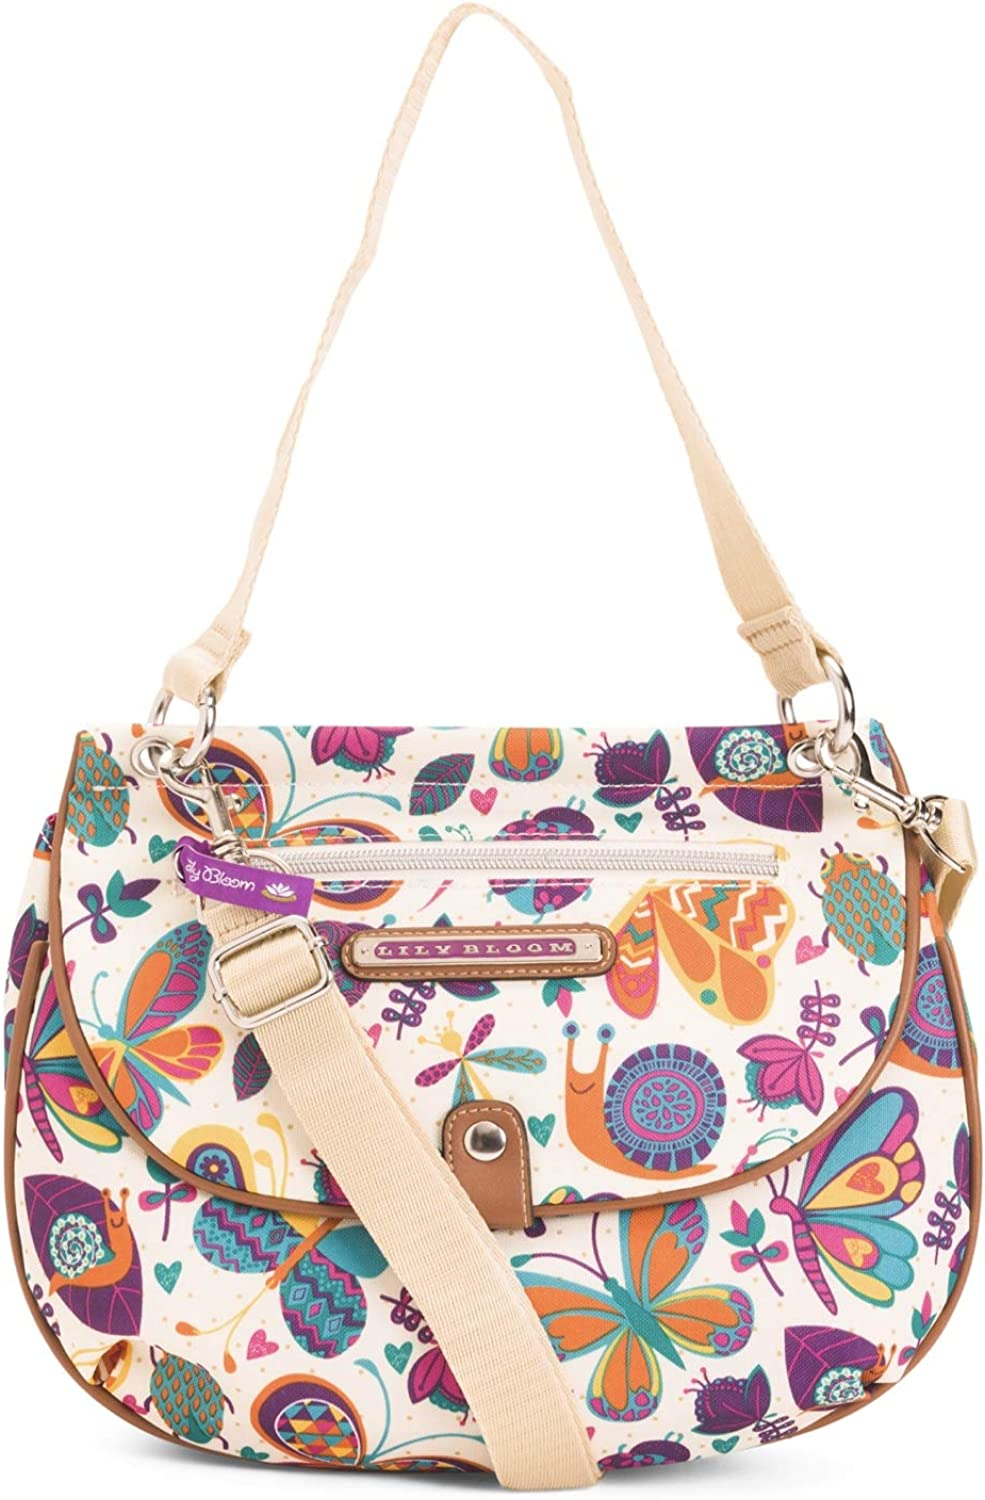 Lily Bloom QUINN CONgreenIBLE Crossbody Bag, Butterflies & Bugaboos, Eco Friendly